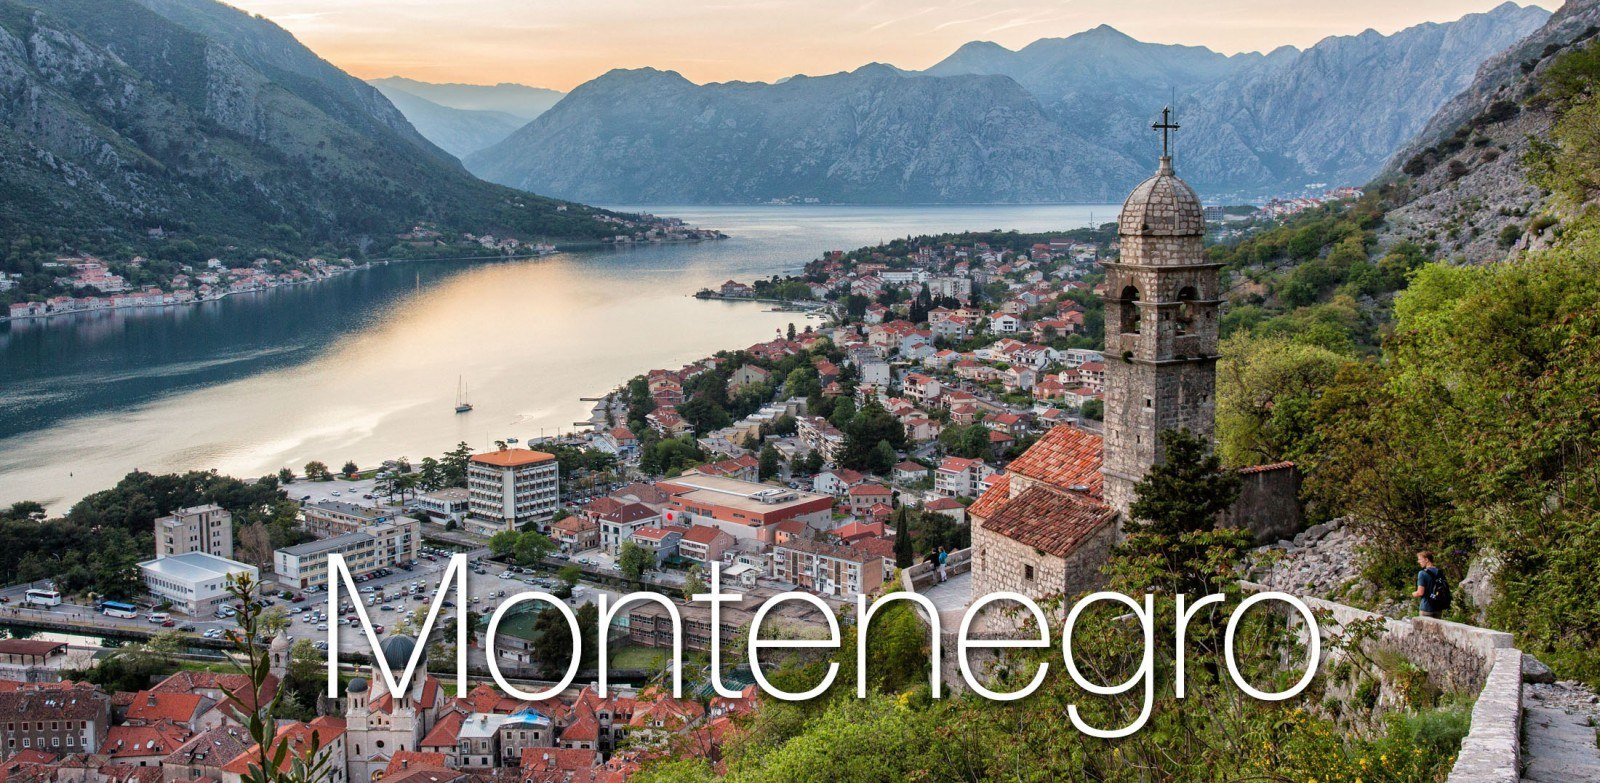 Montenegrin economy: issues and possible solutions